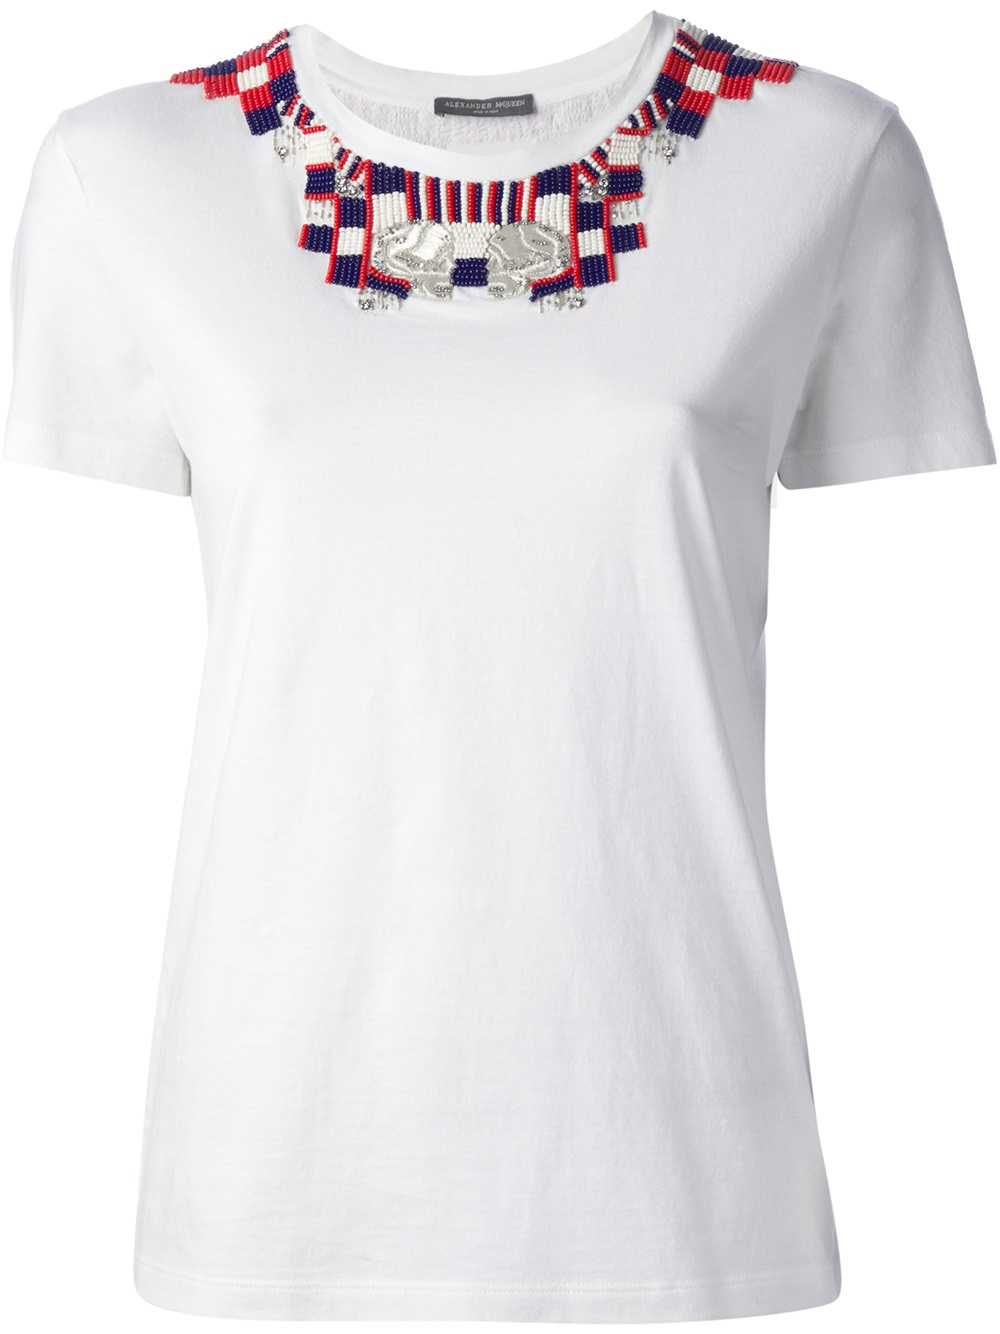 Alexander mcqueen bead embroidery t shirt in white lyst